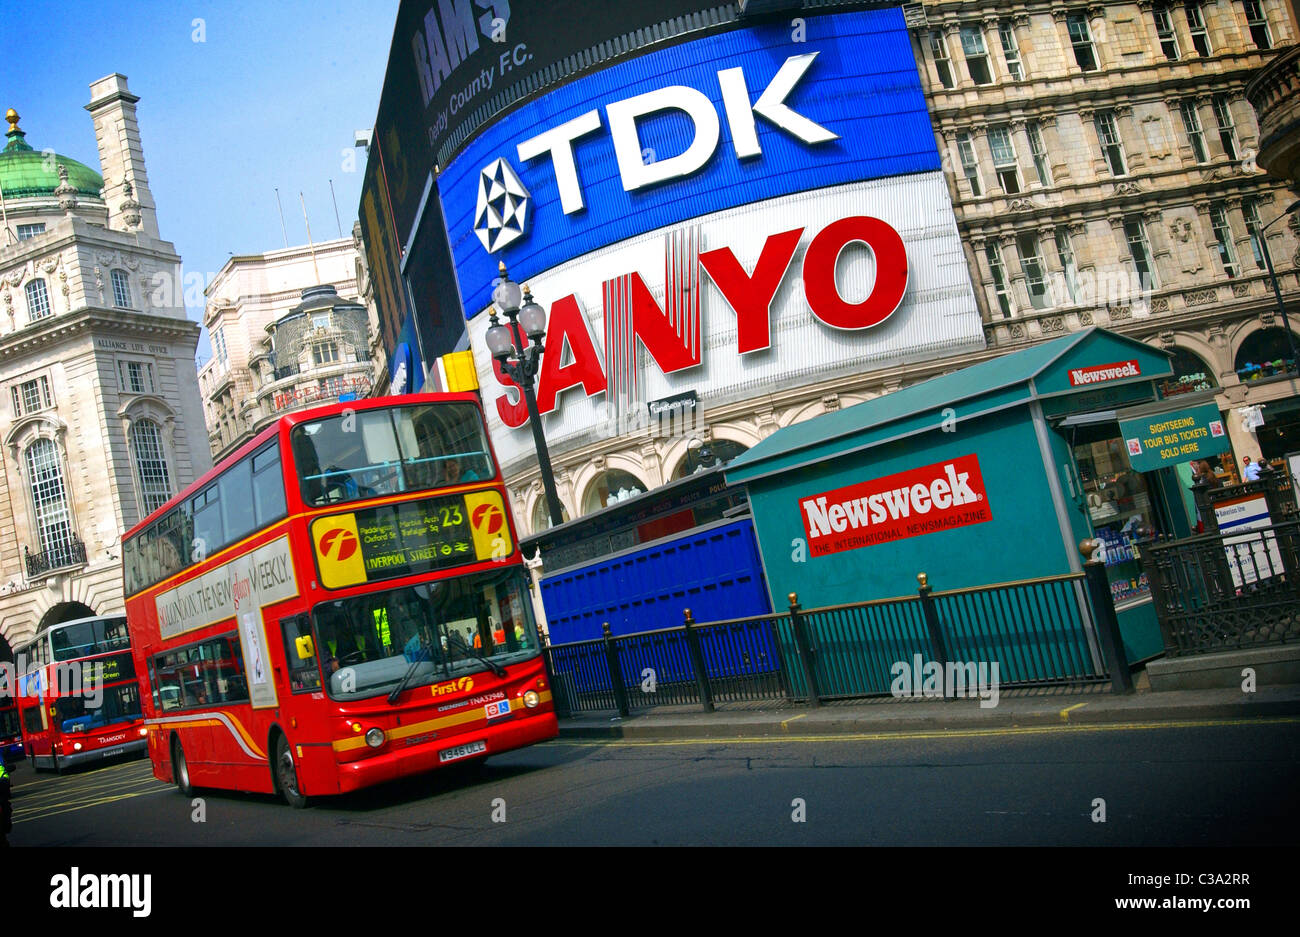 A buss traveling through central London. - Stock Image